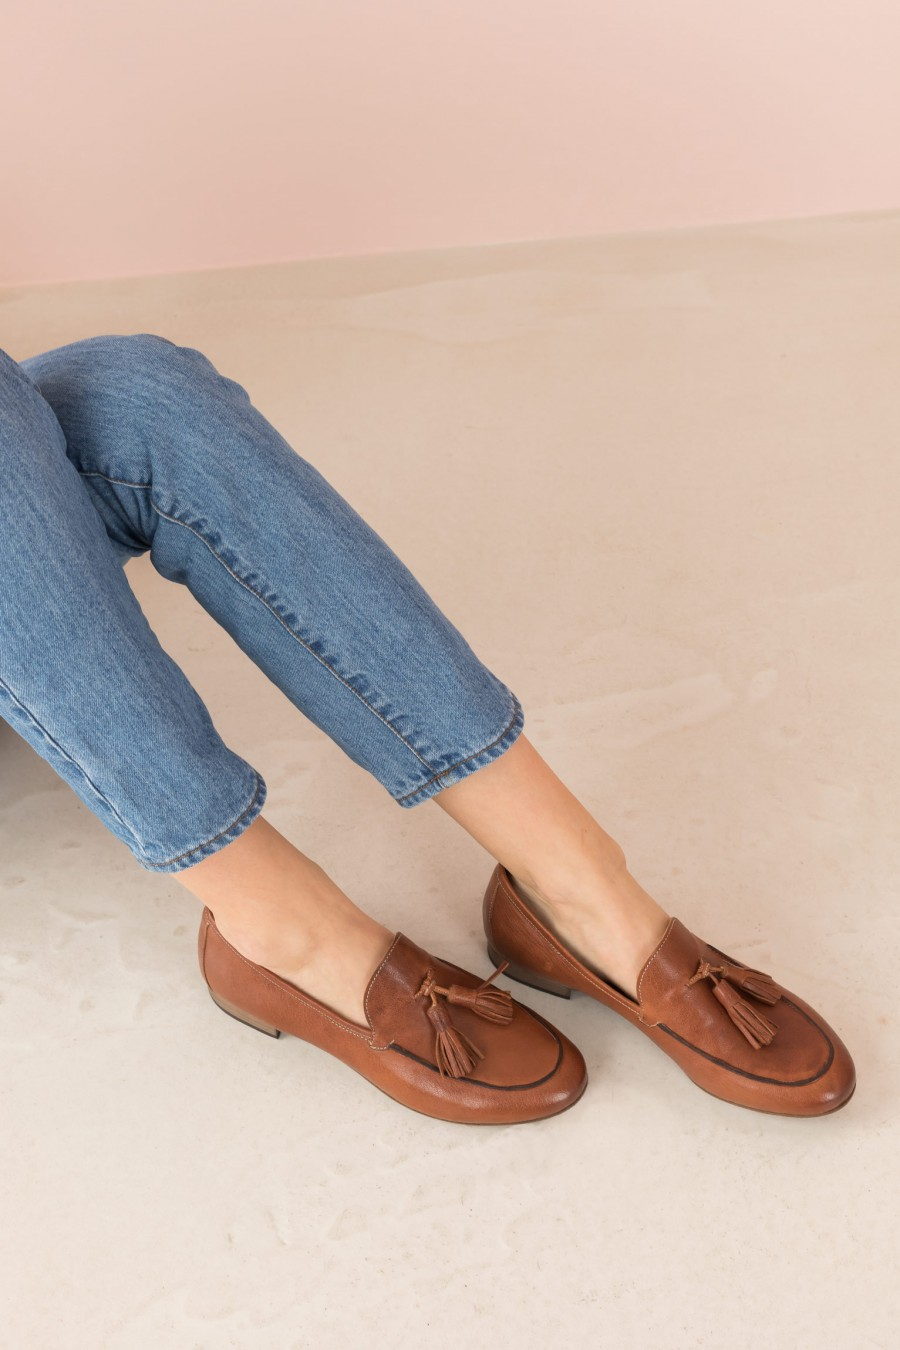 brick colored loafer with tassels